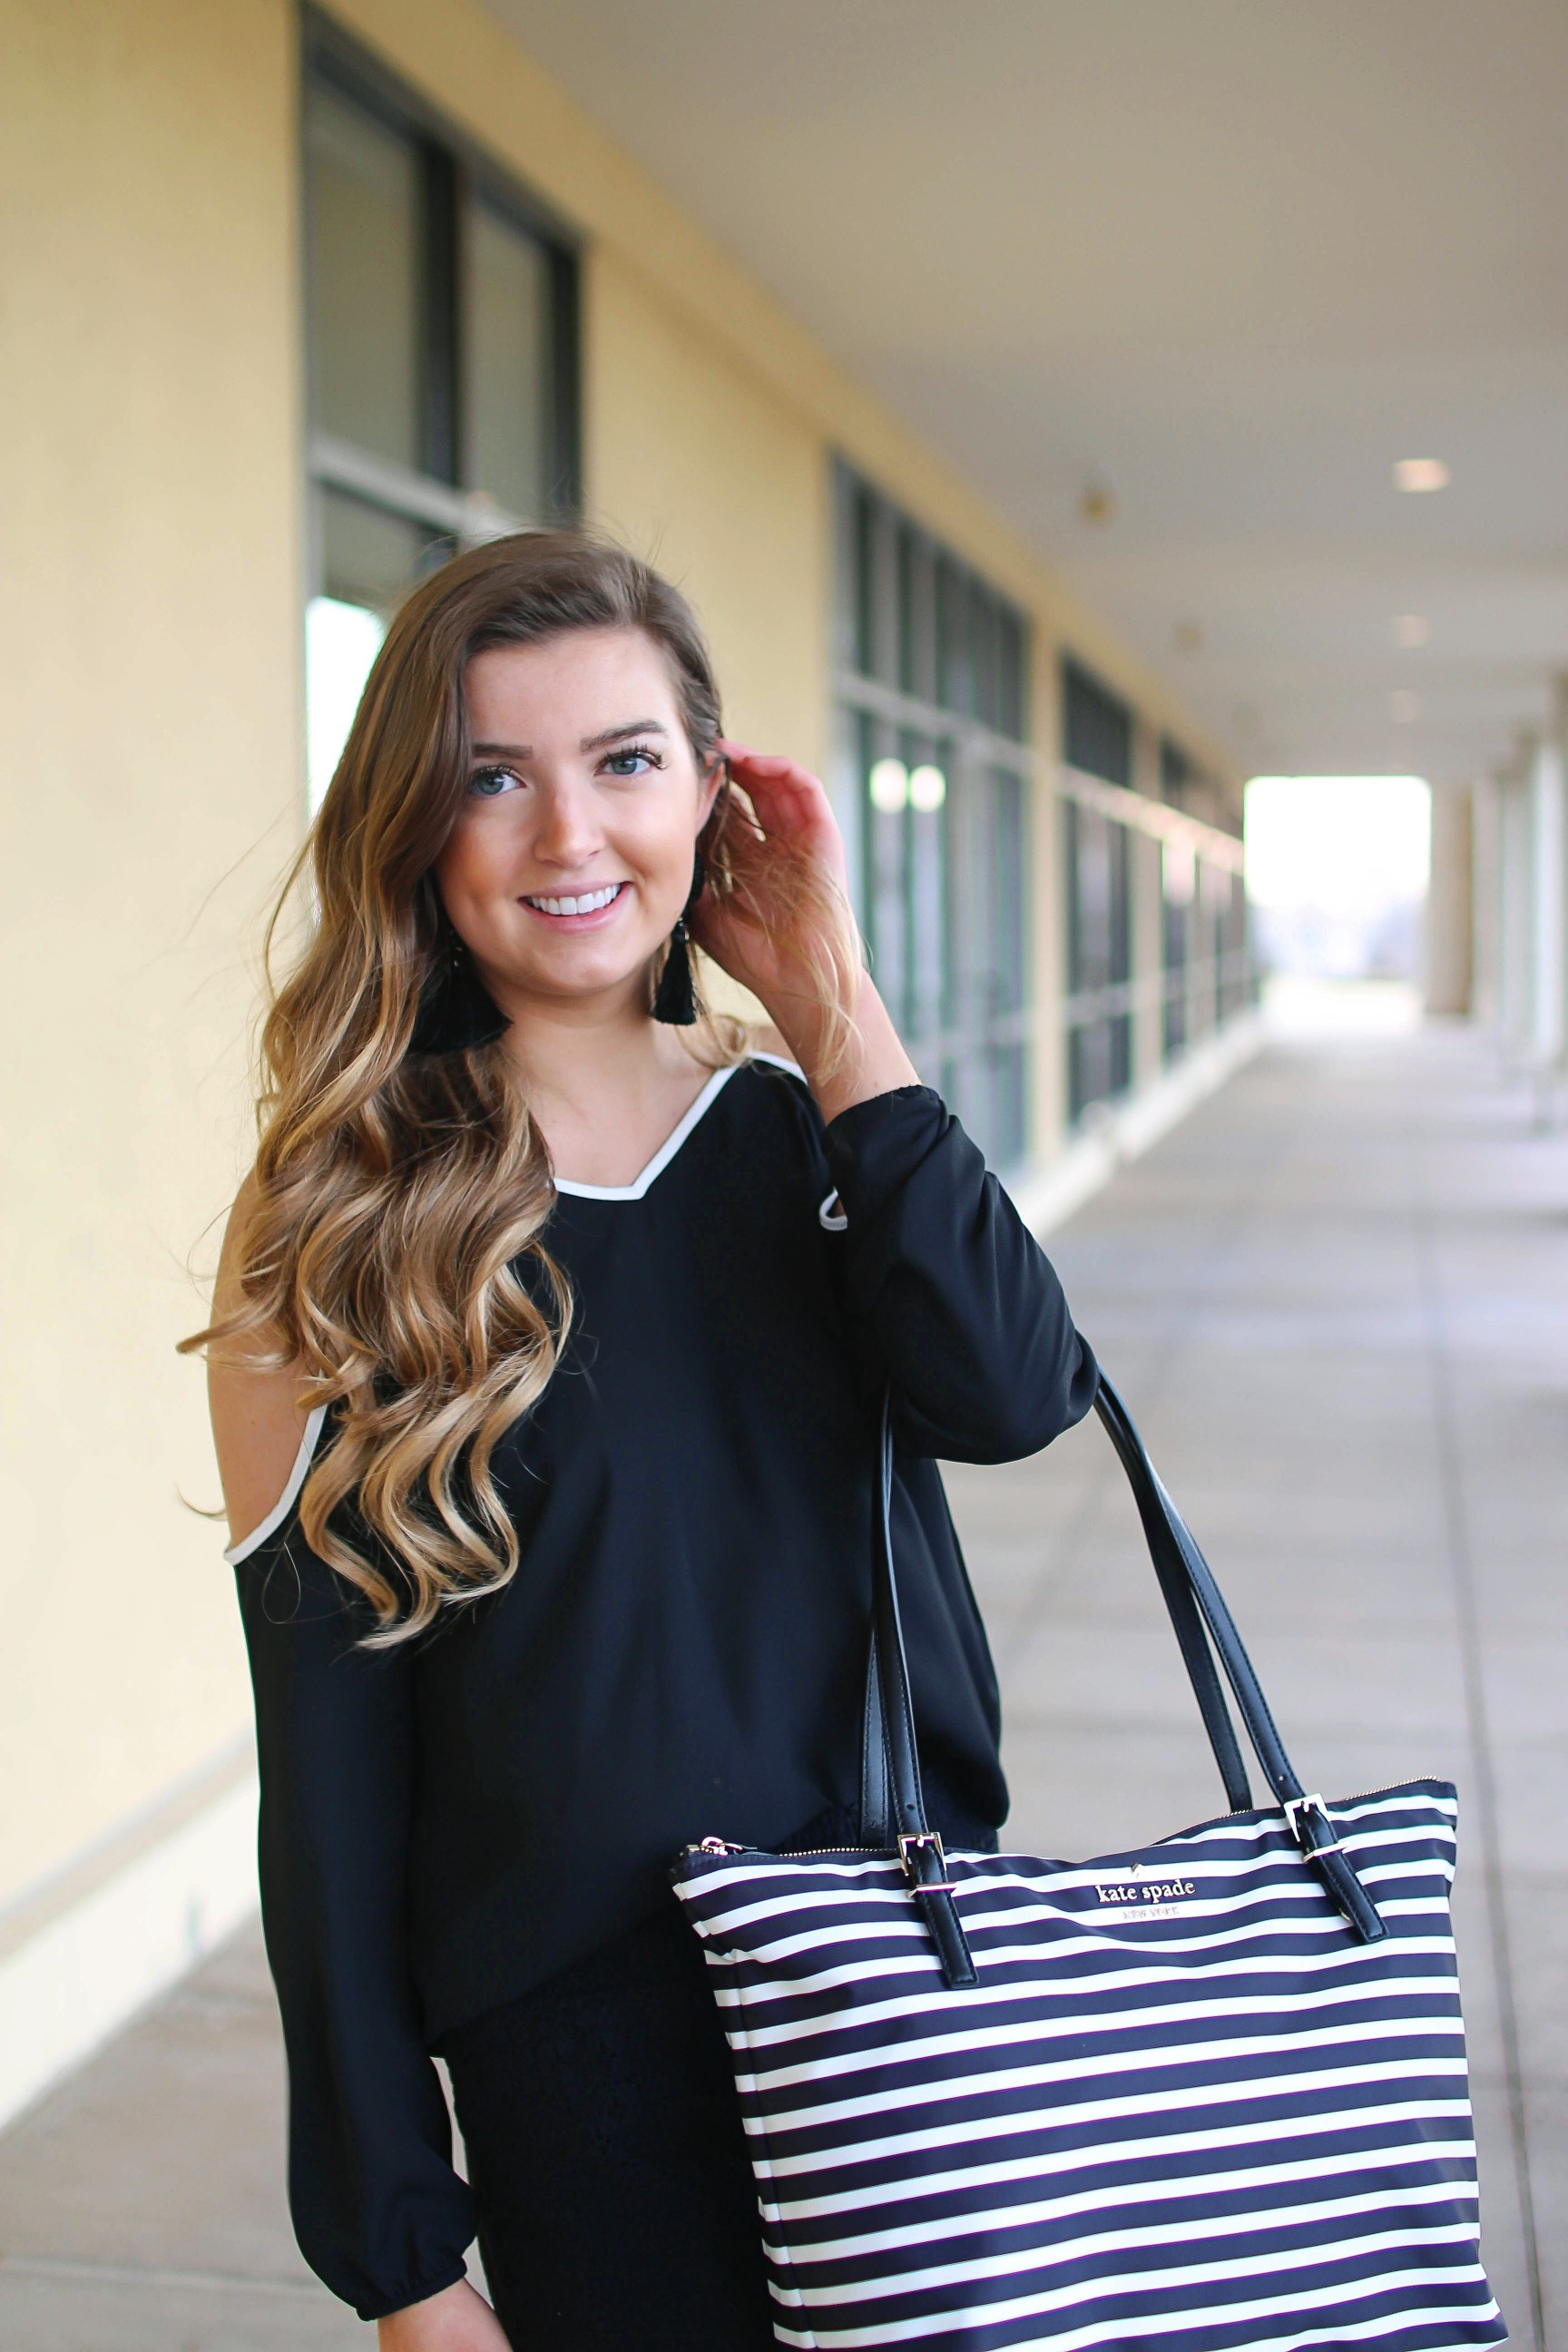 Black and white outfit! I love this black cold shoulder top with the white trim detail! I paired ti with some comfy black cotton shorts and my new black and white striped Kate spade tote! To finish off the outfit I put on my tassel earrings that are only $12! By Lauren Lindmark on Daily Dose of Charm dailydoseofcharm.com